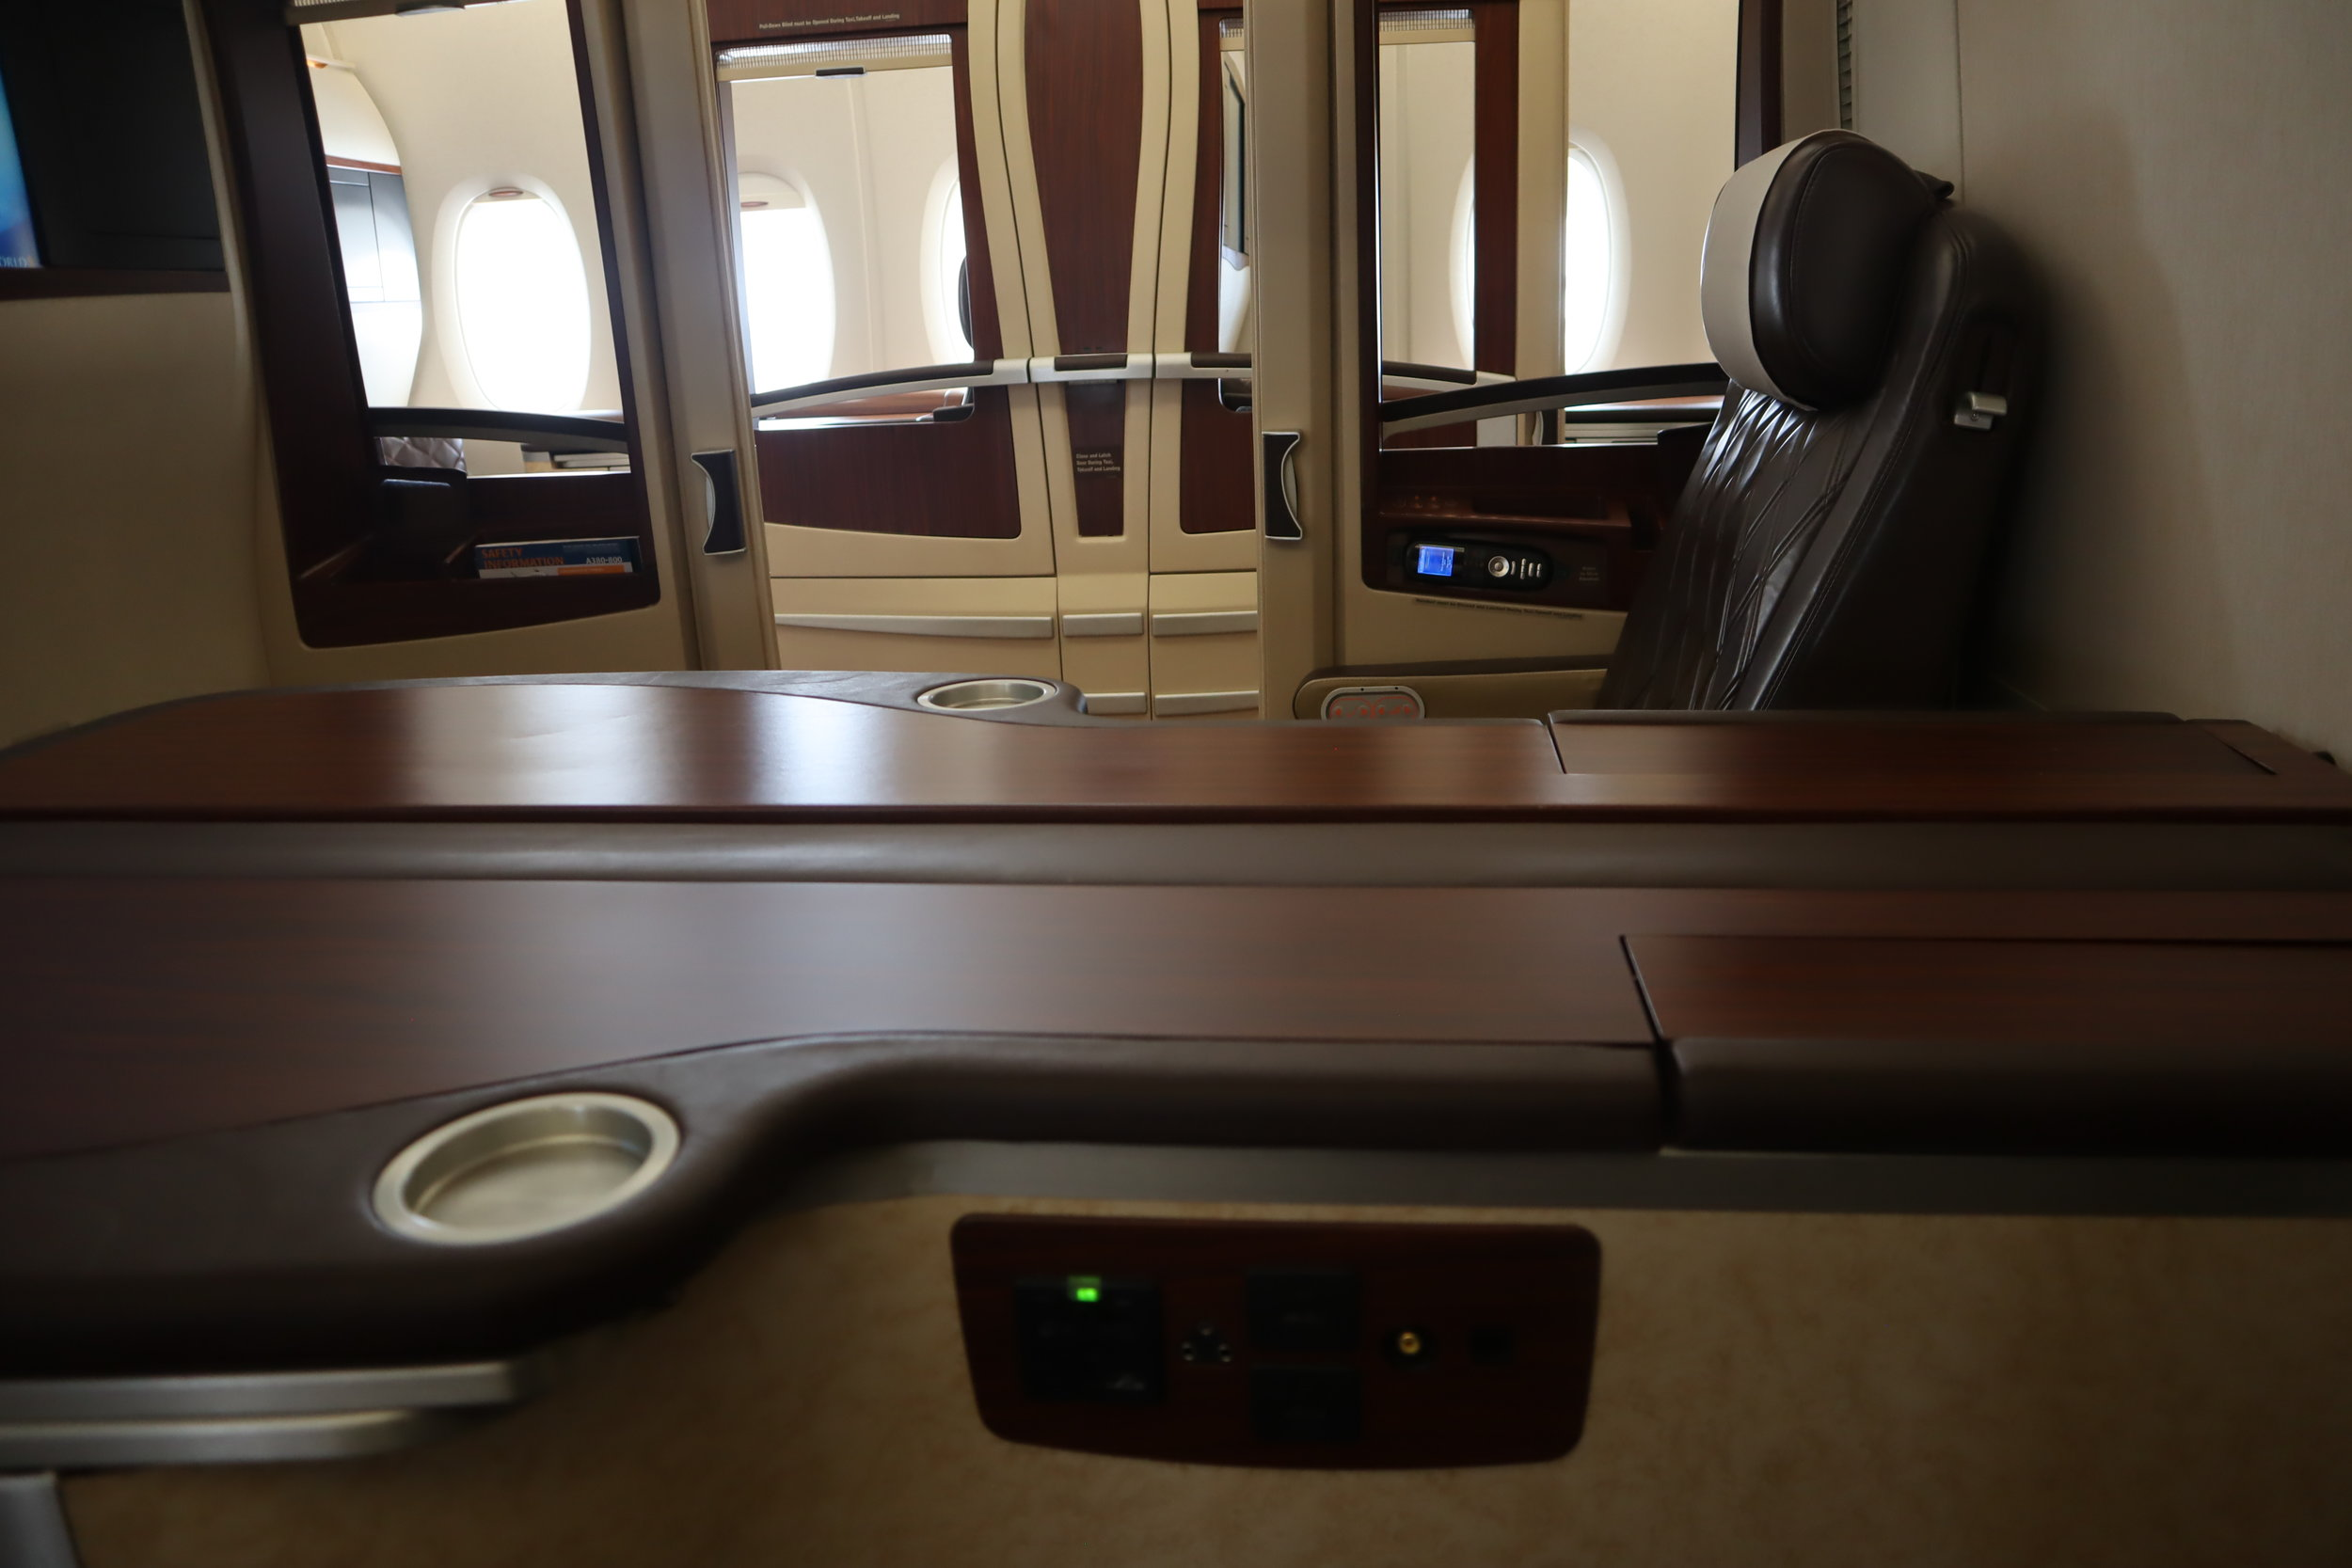 Singapore Airlines Suites Class – Seat console